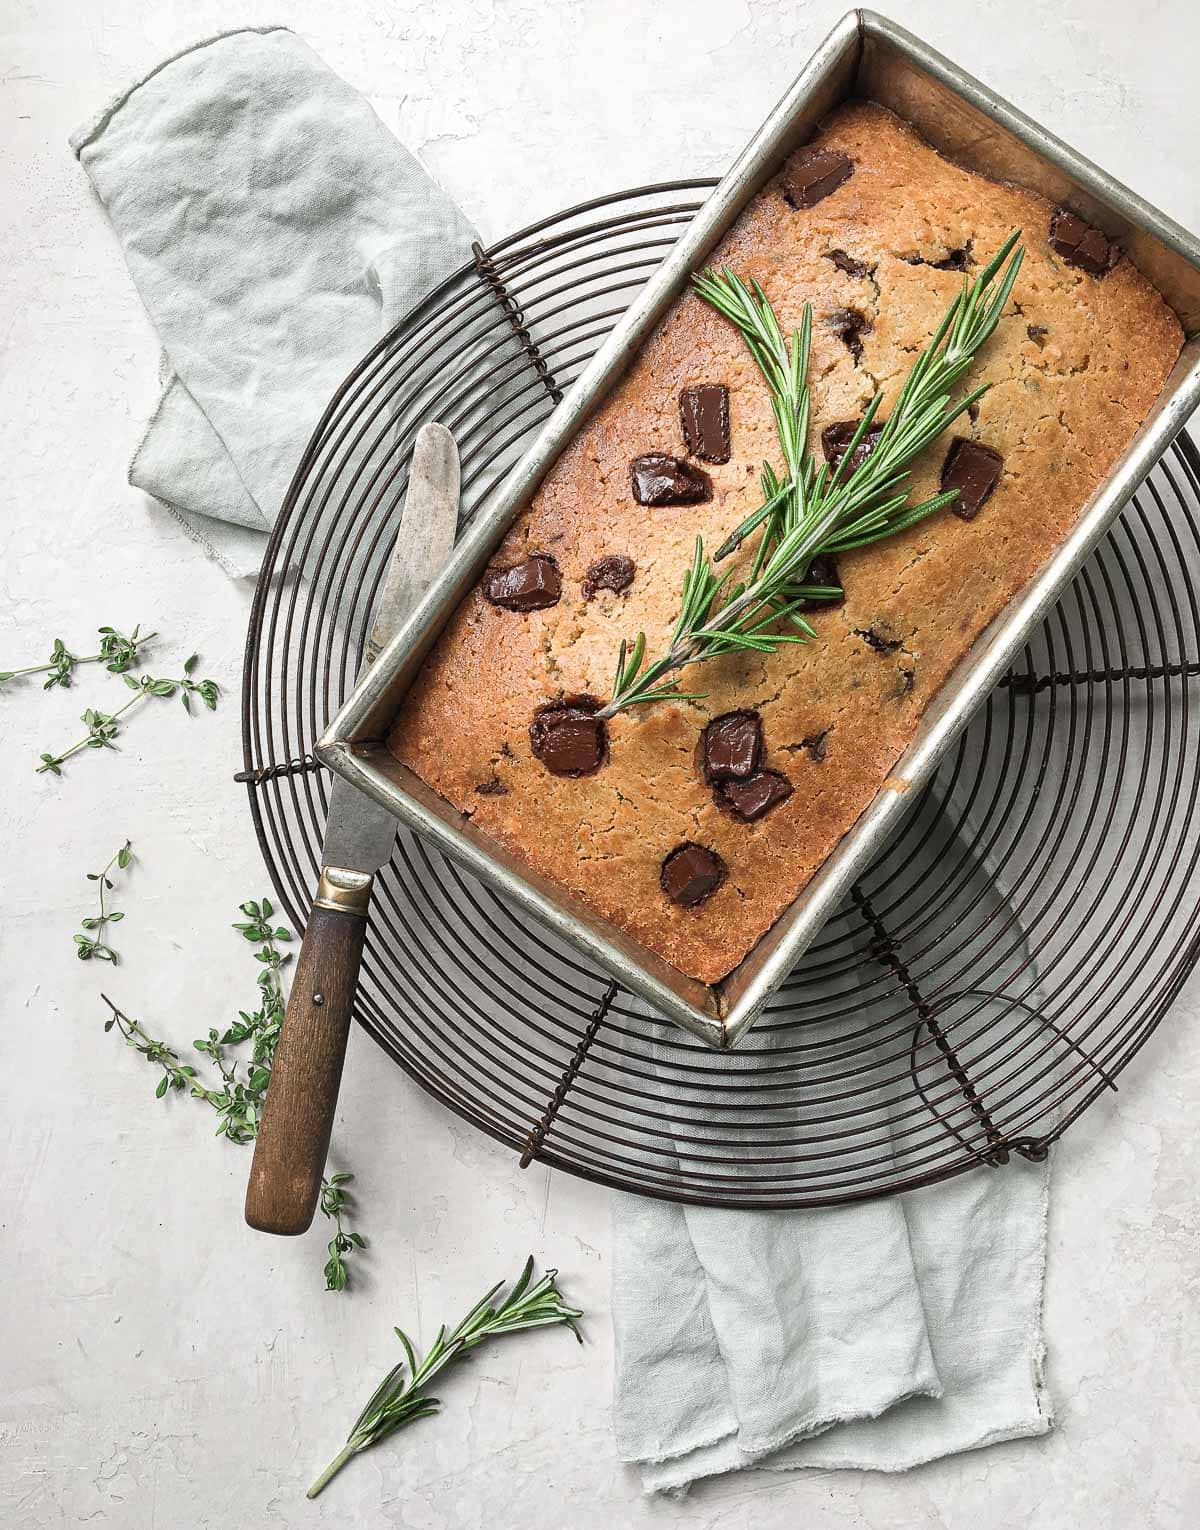 A loaf pan of olive oil quick bread topped with chocolate chunks and fresh rosemary sprig.